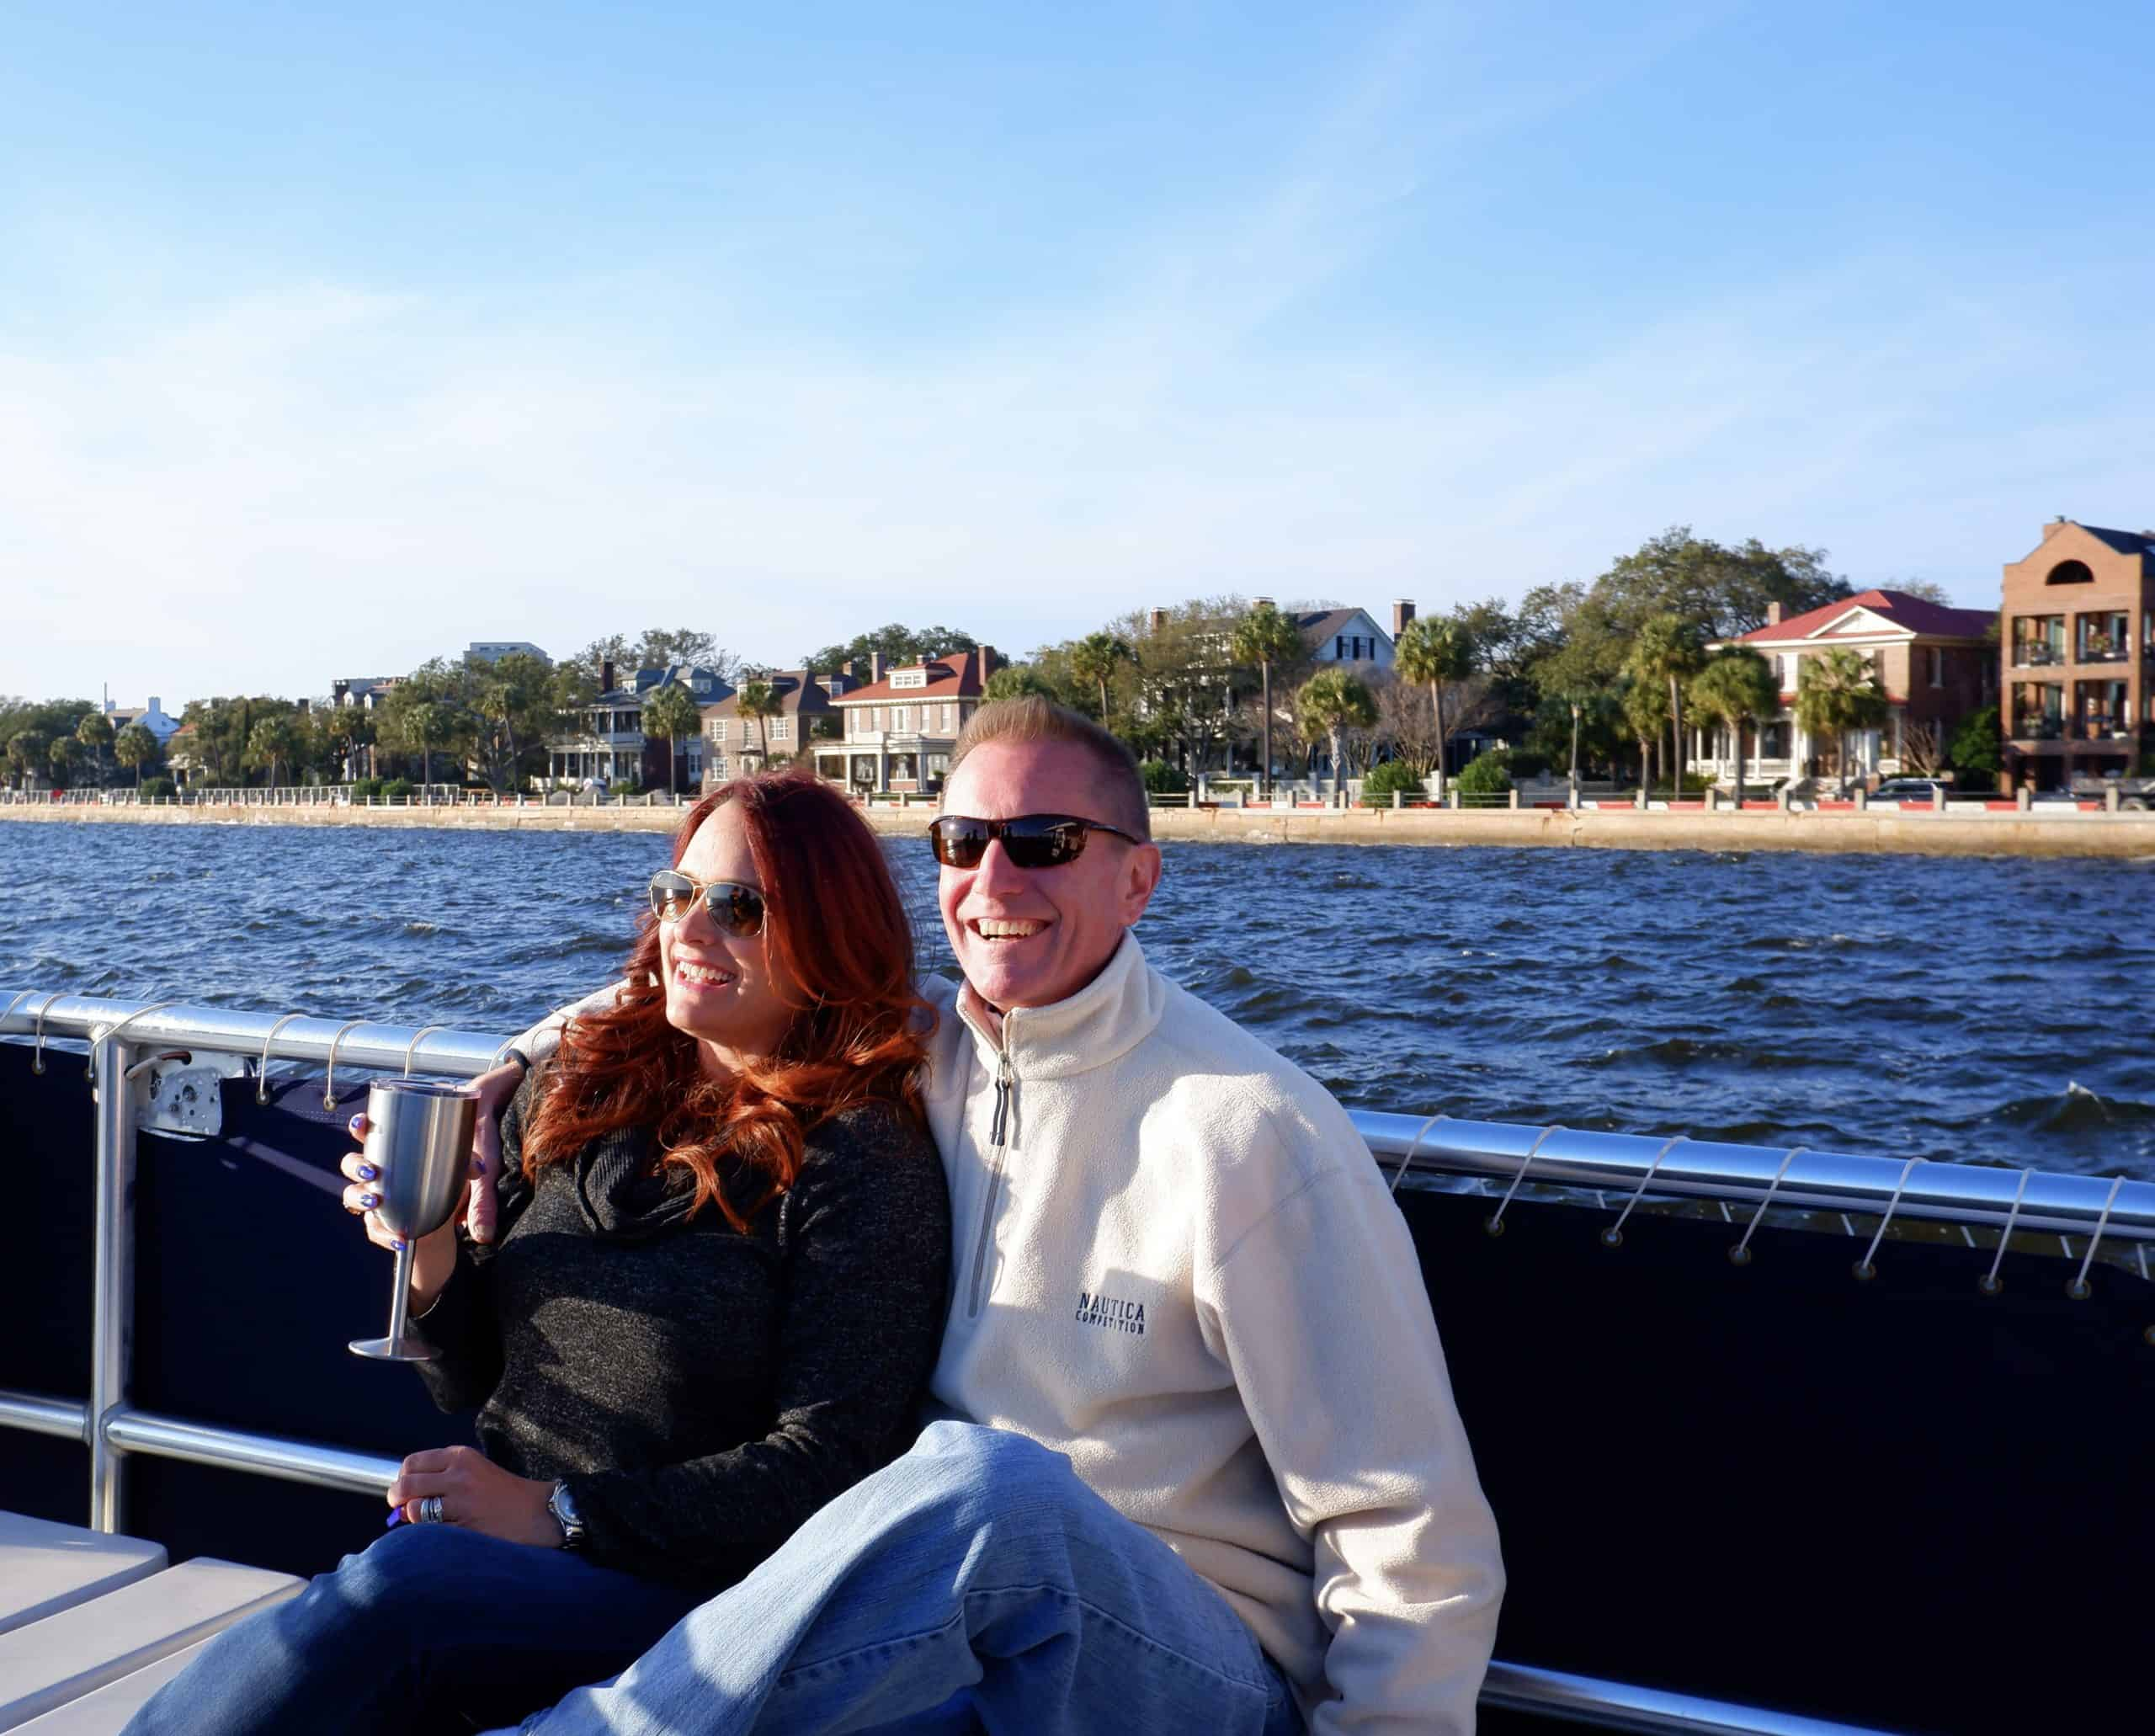 Couple pictured on the boat with The Battery in the background. Party boat rental Charleston, SC